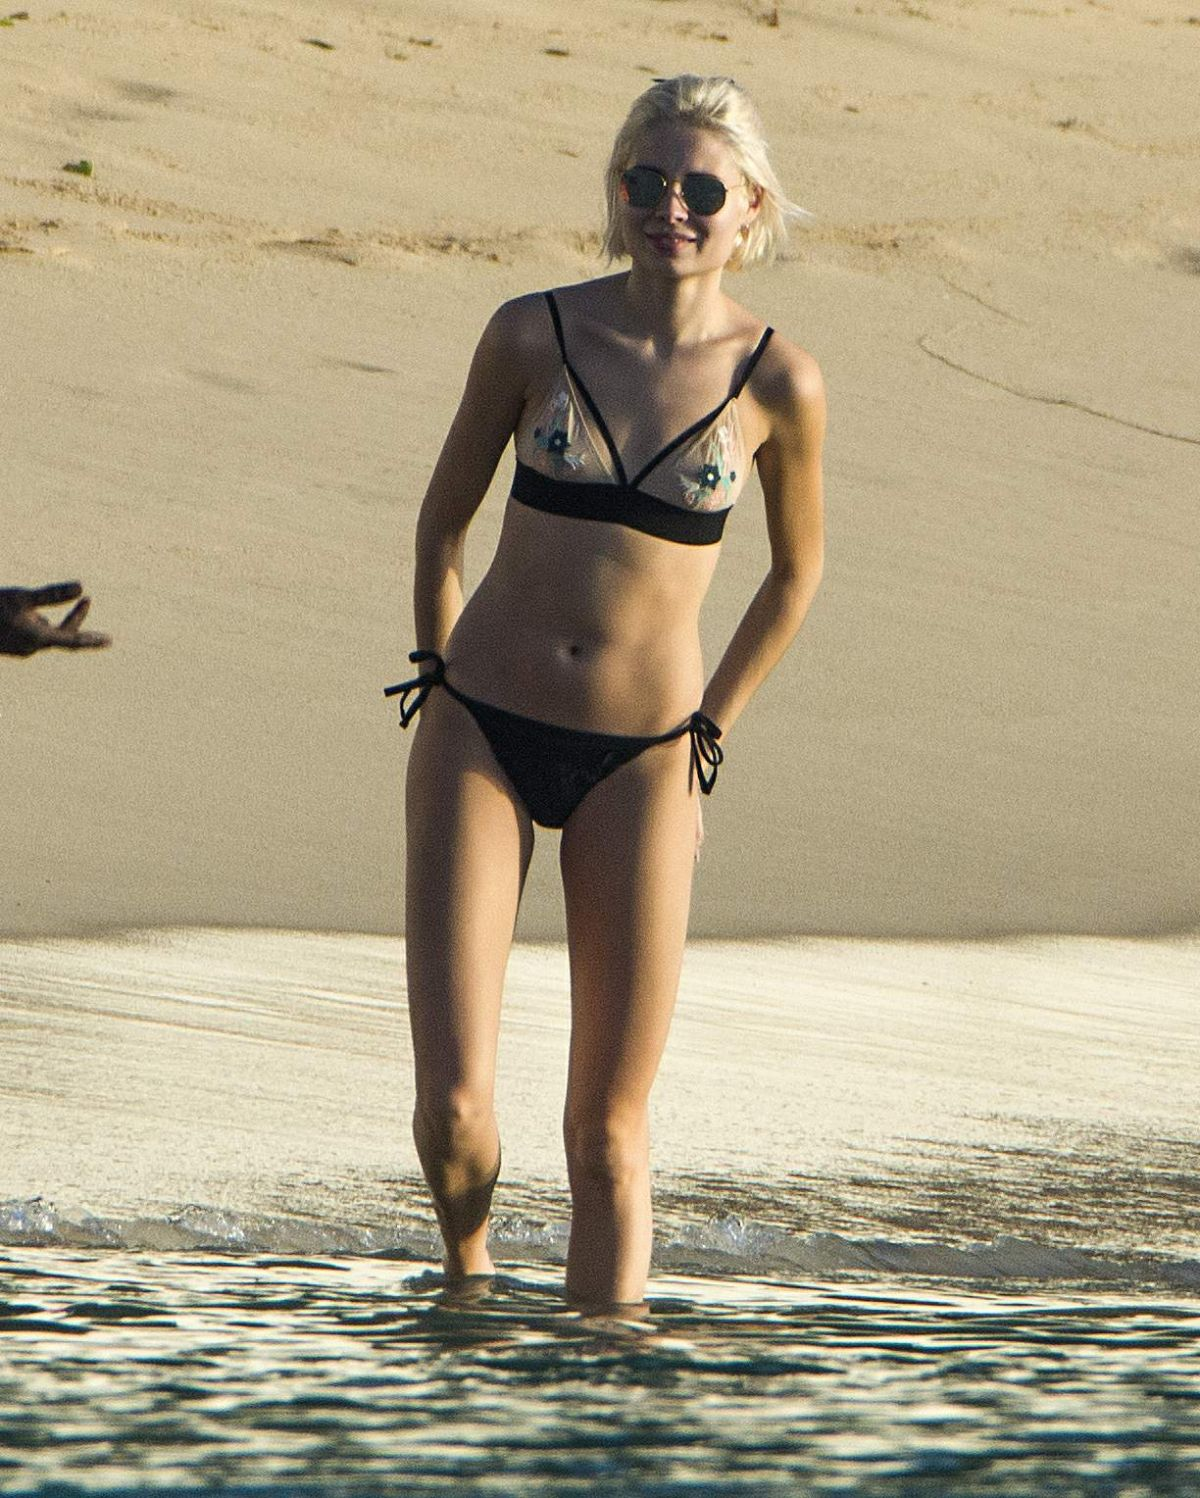 Nina Nesbitt On holiday in Barbados   nina-nesbitt-on-holiday-in-barbados-_1